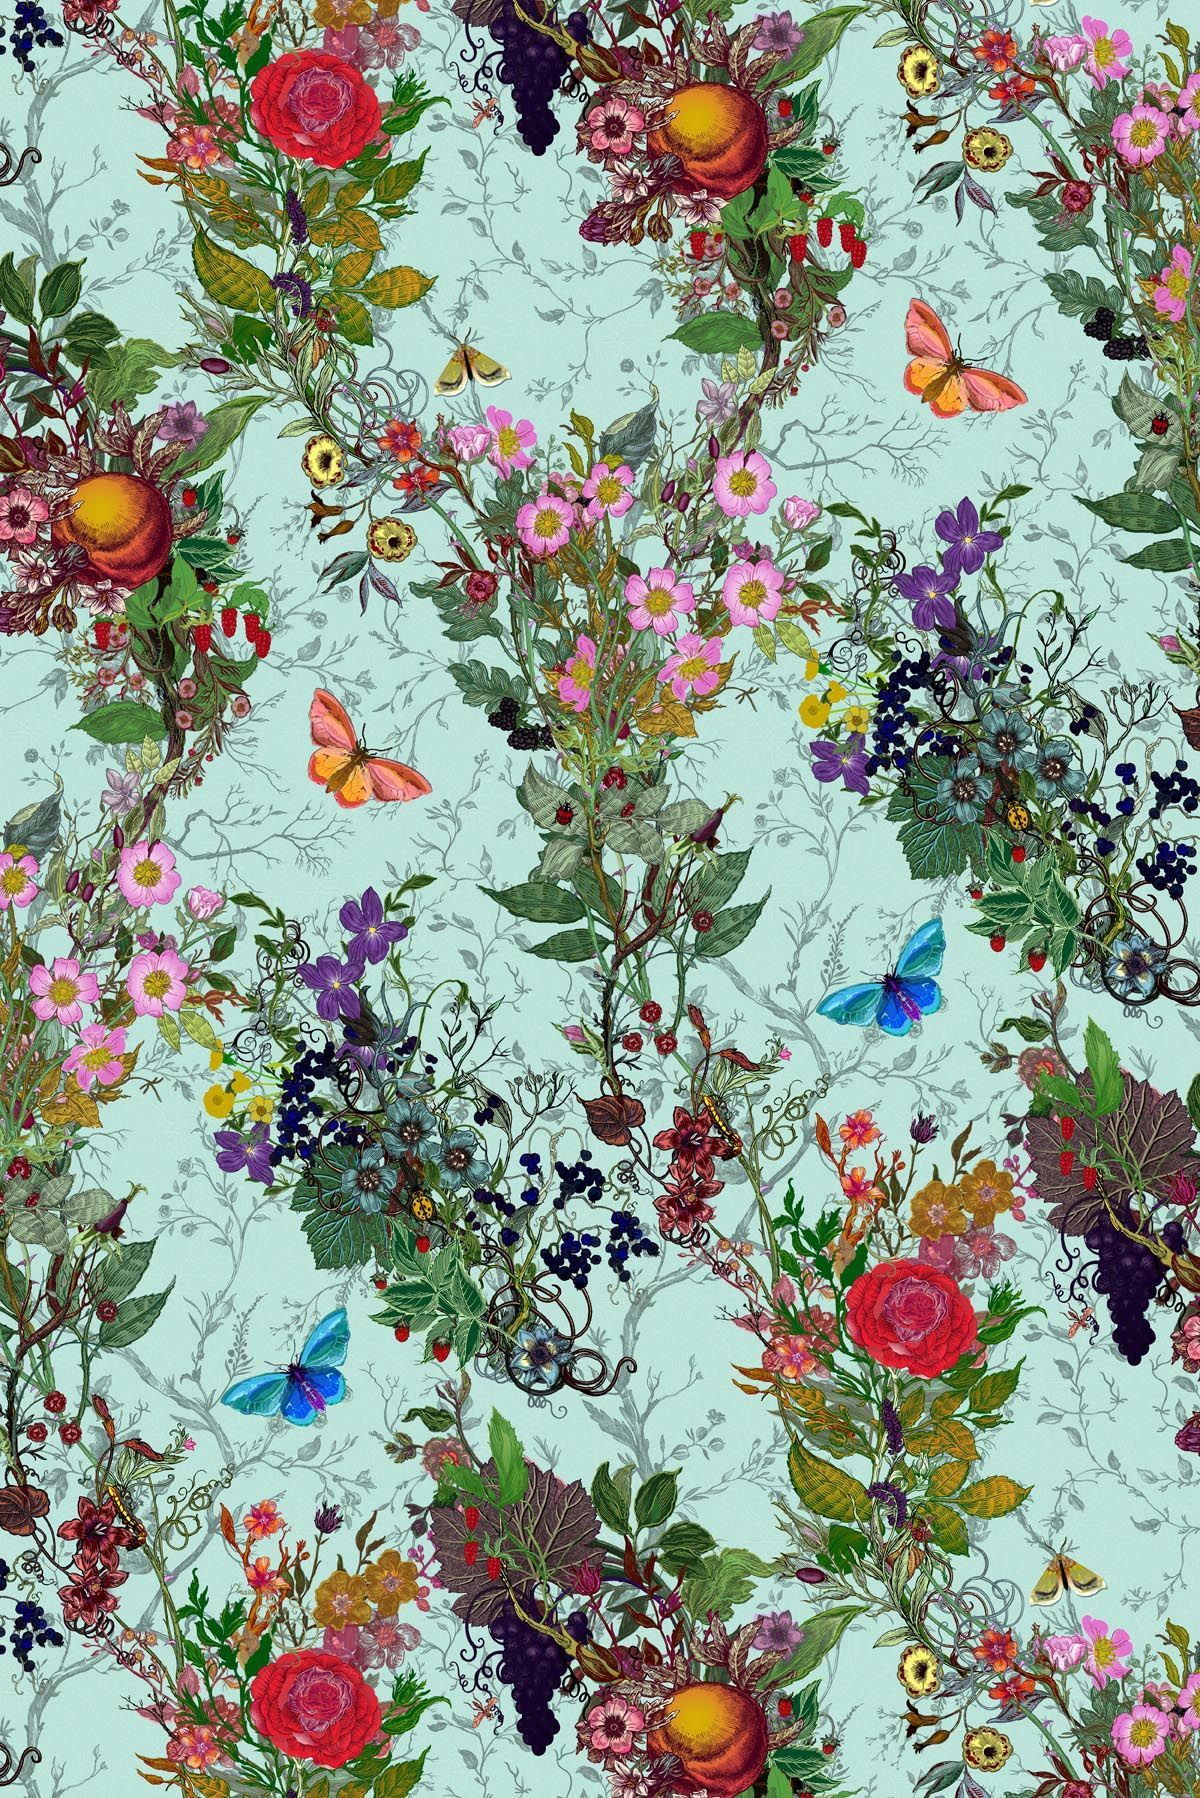 Beautiful floral flower rose lilac butterfly butterflies spring garden red blue green orange purple pink yellow white background pattern wallpaper